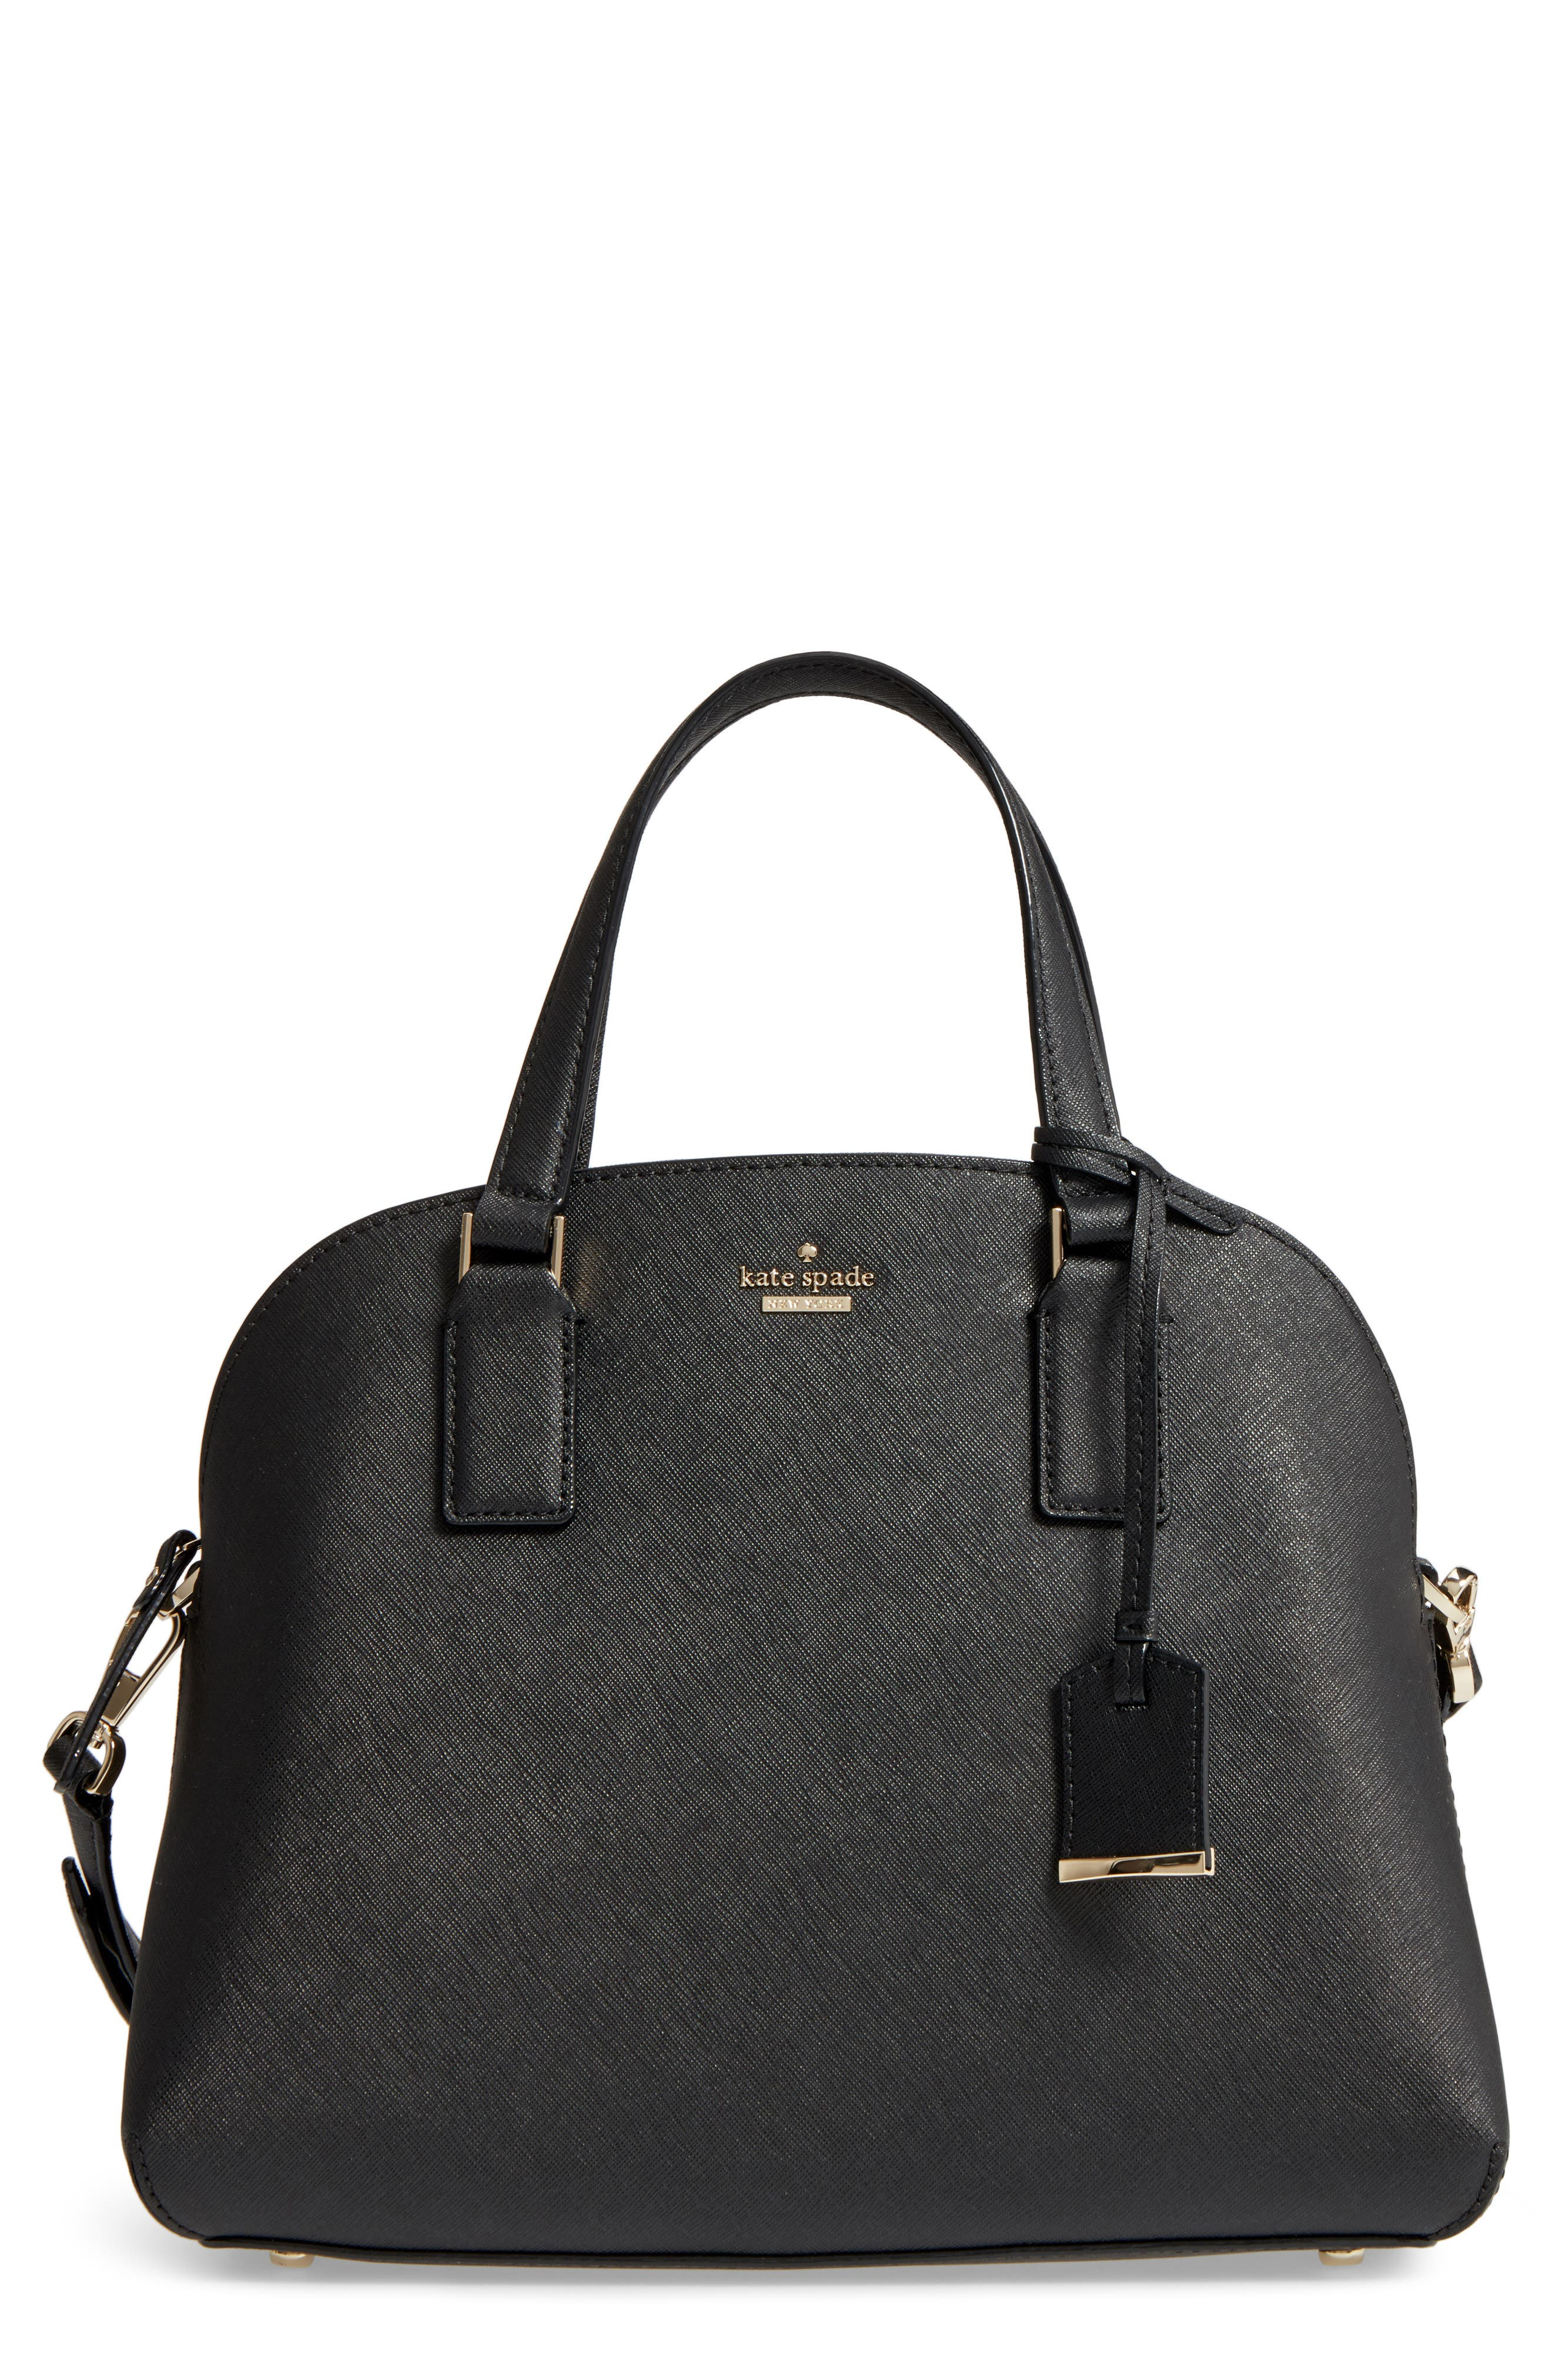 cameron street - lottie leather satchel,                         Main,                         color, 001